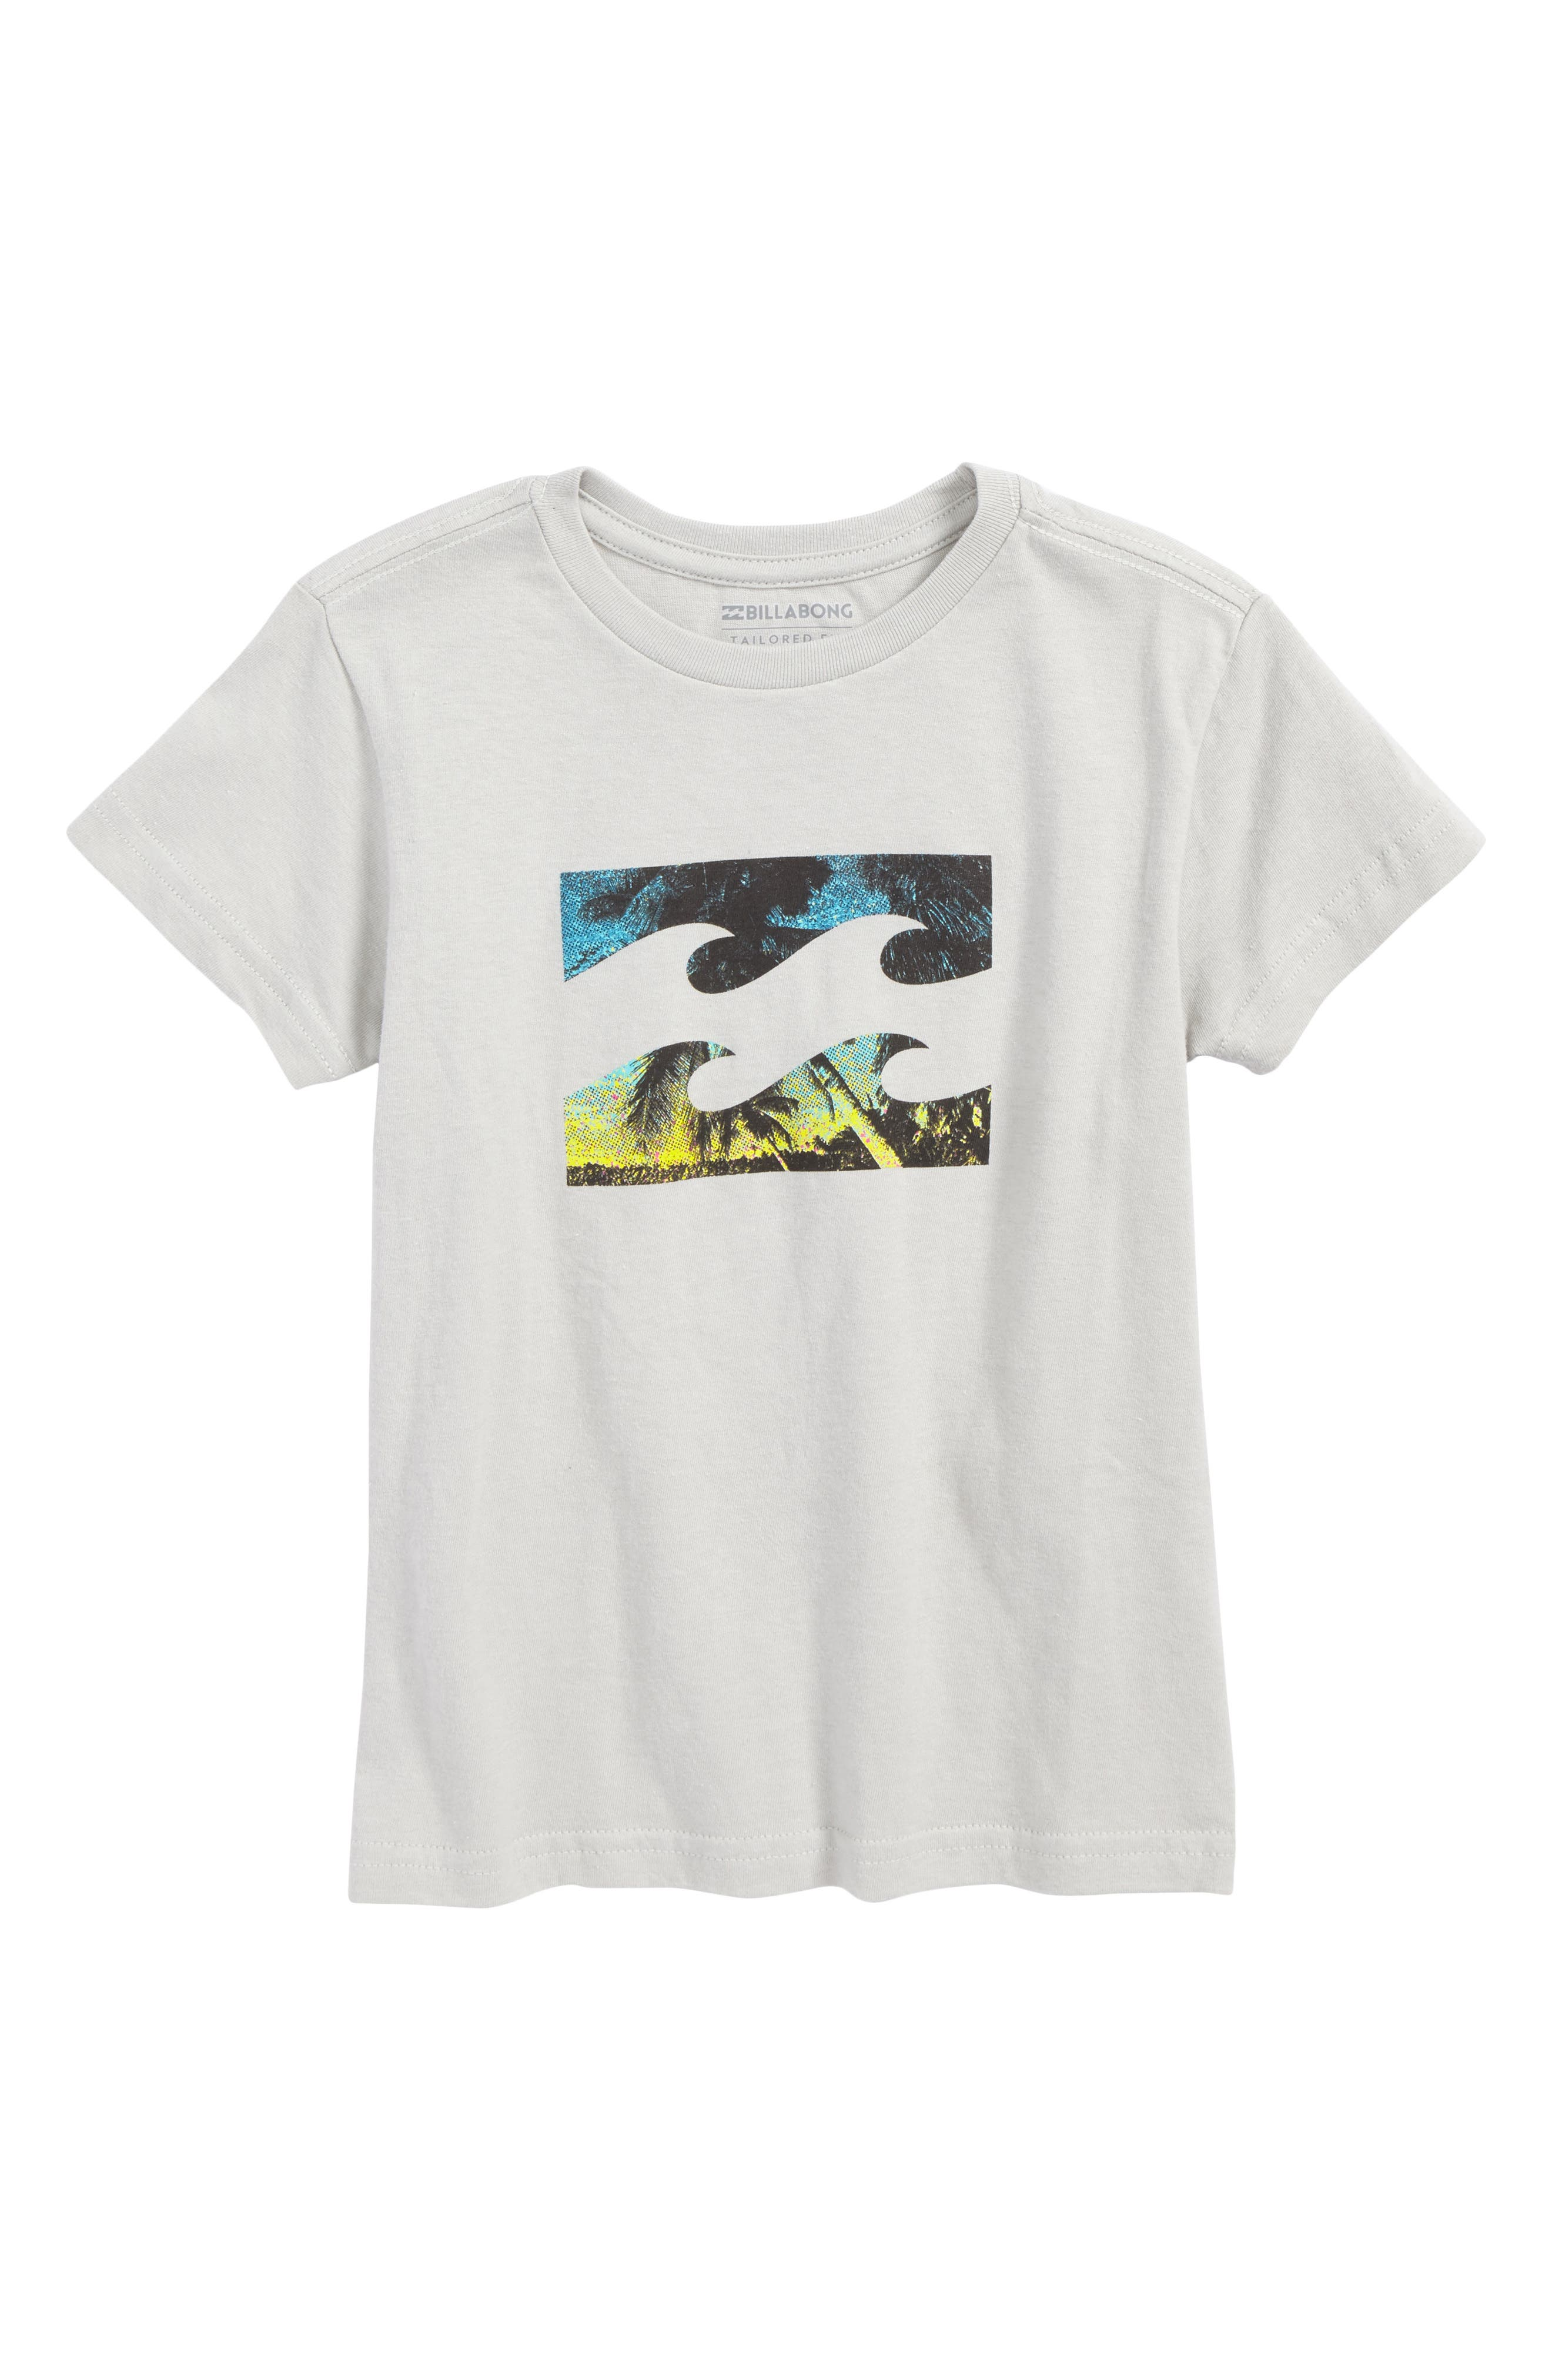 Team Wave Graphic T-Shirt,                         Main,                         color, Silver